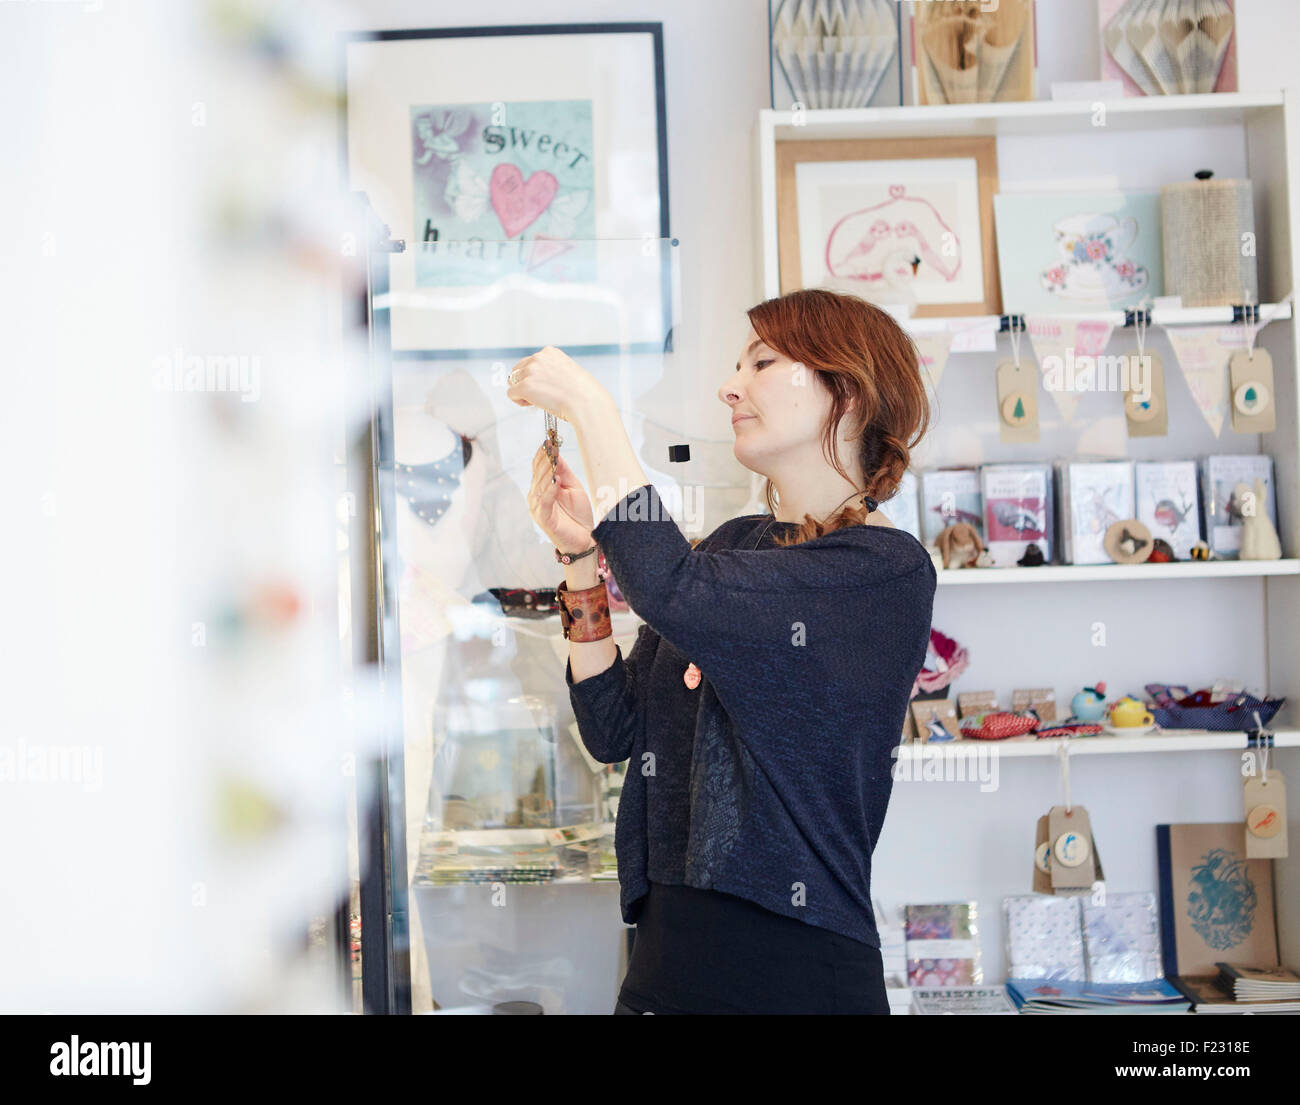 A mature woman in a gift and jewellery shop, looking closely at an object, a shopper or a business owner and jeweller. - Stock Image